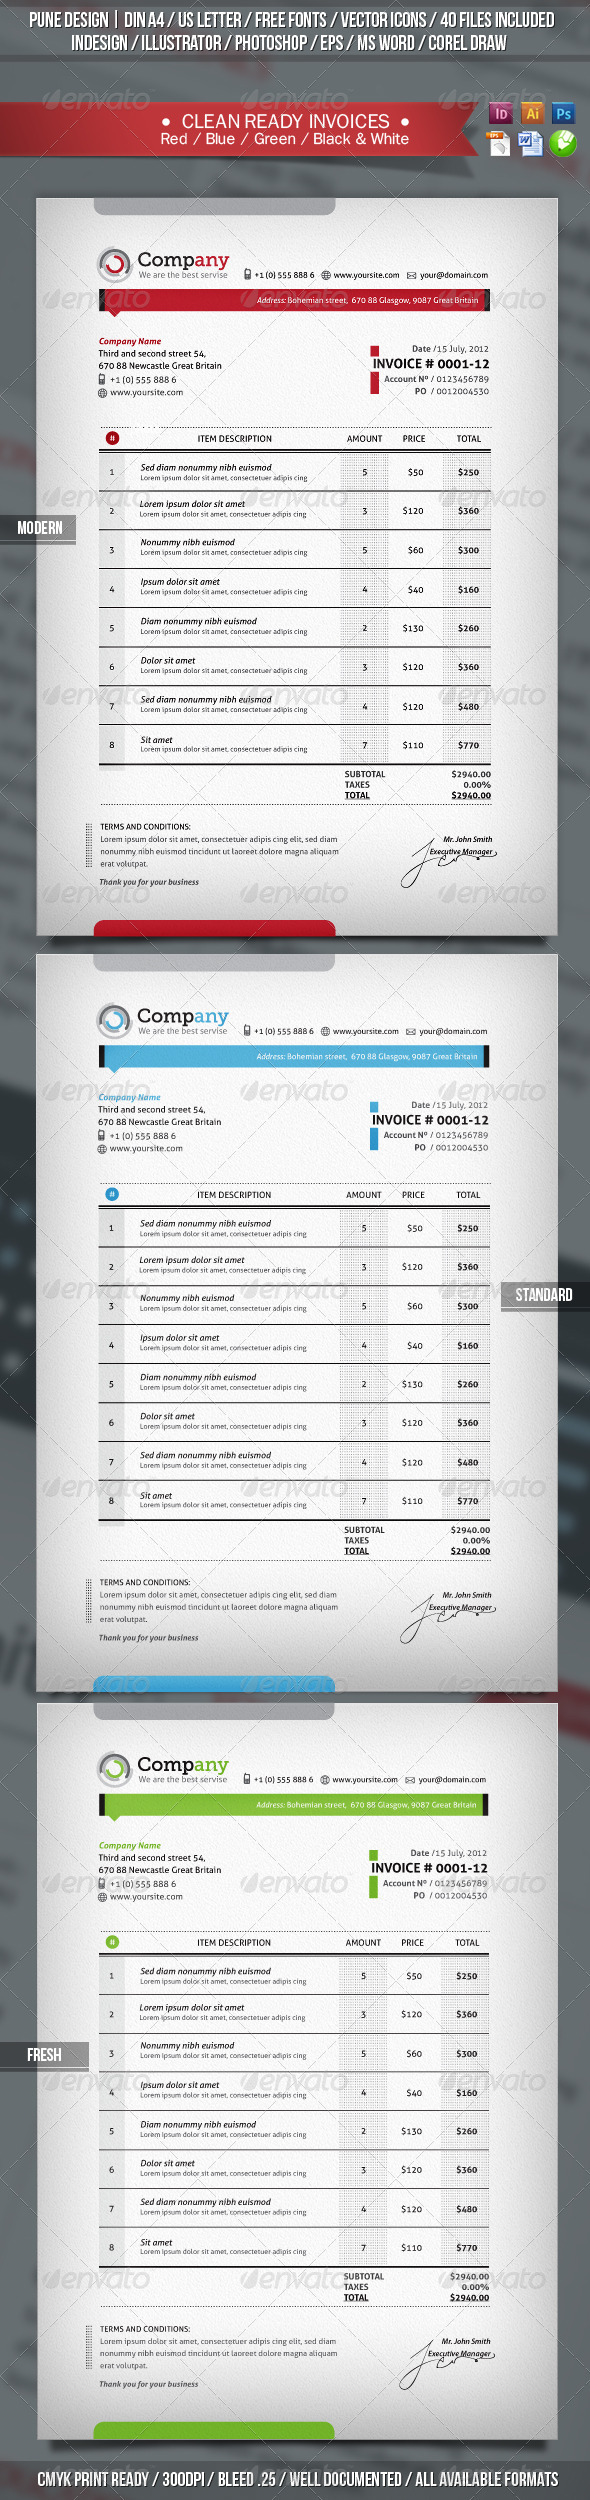 Invoices | Clean & Ready Templates